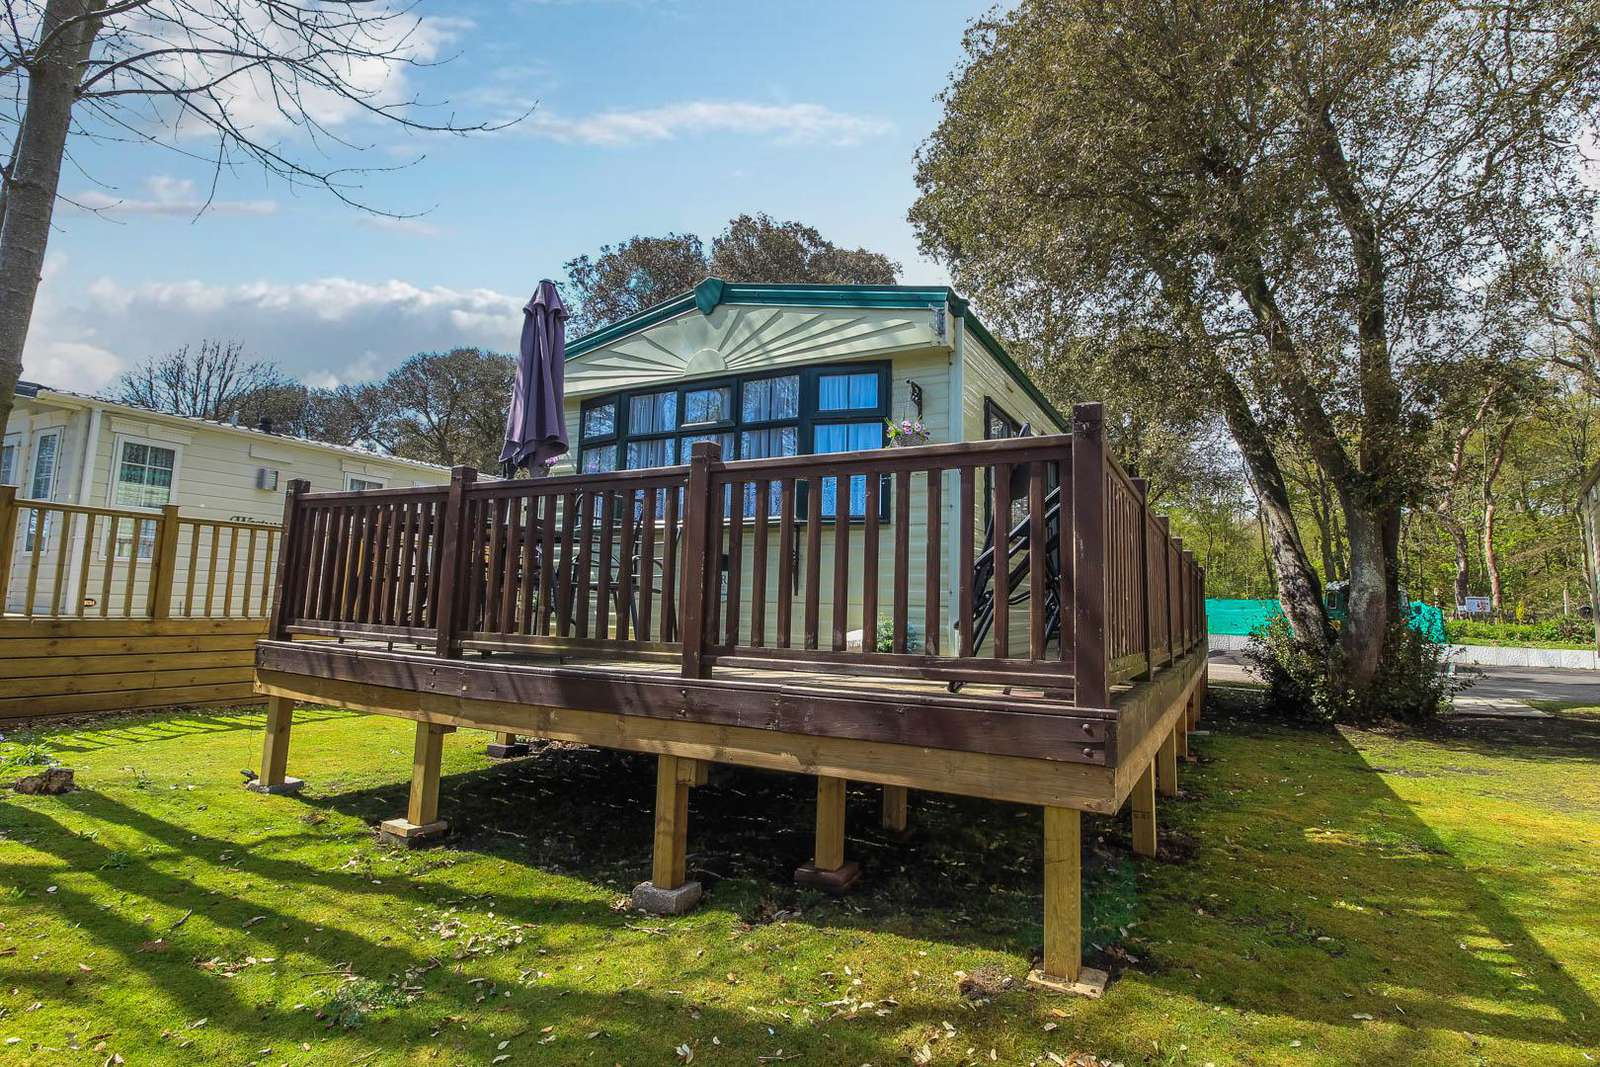 32021AS – Azure Seas, 2 bed, 5 berth caravan with decking on large pitch. Ruby rated. - property